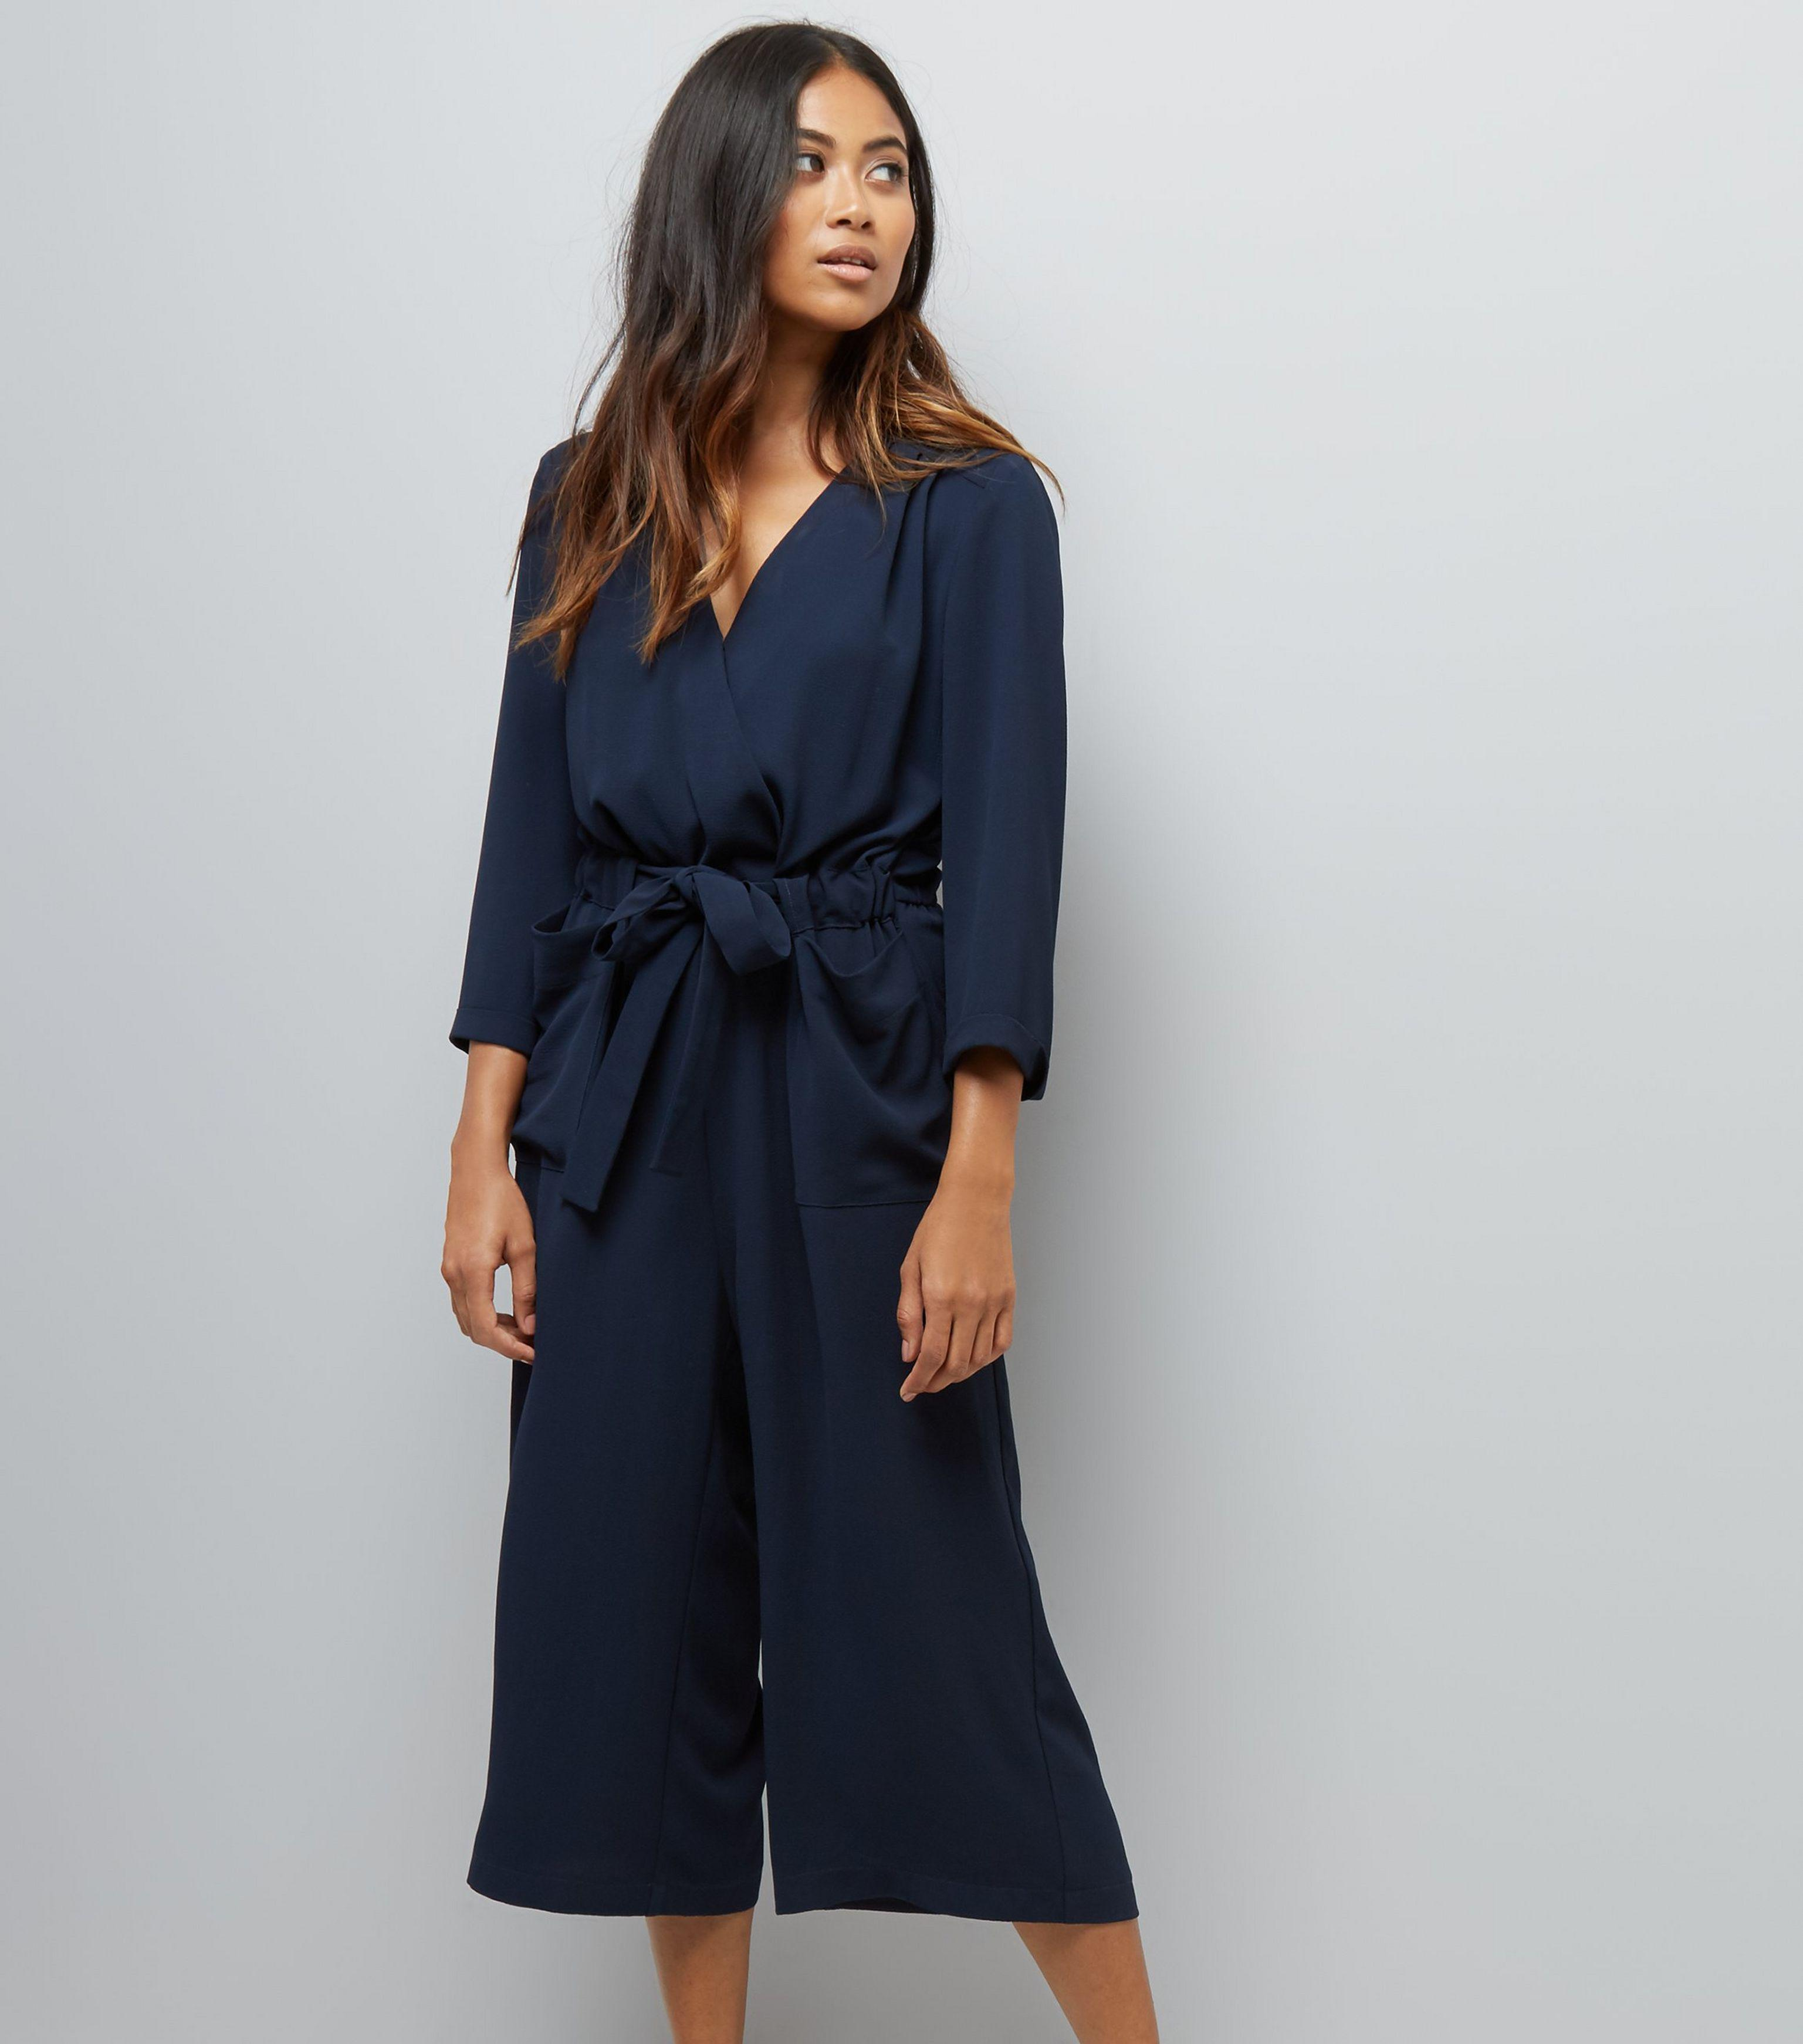 b422c14af7cf New Look Petite Navy Wrap Front Culotte Jumpsuit in Blue - Lyst